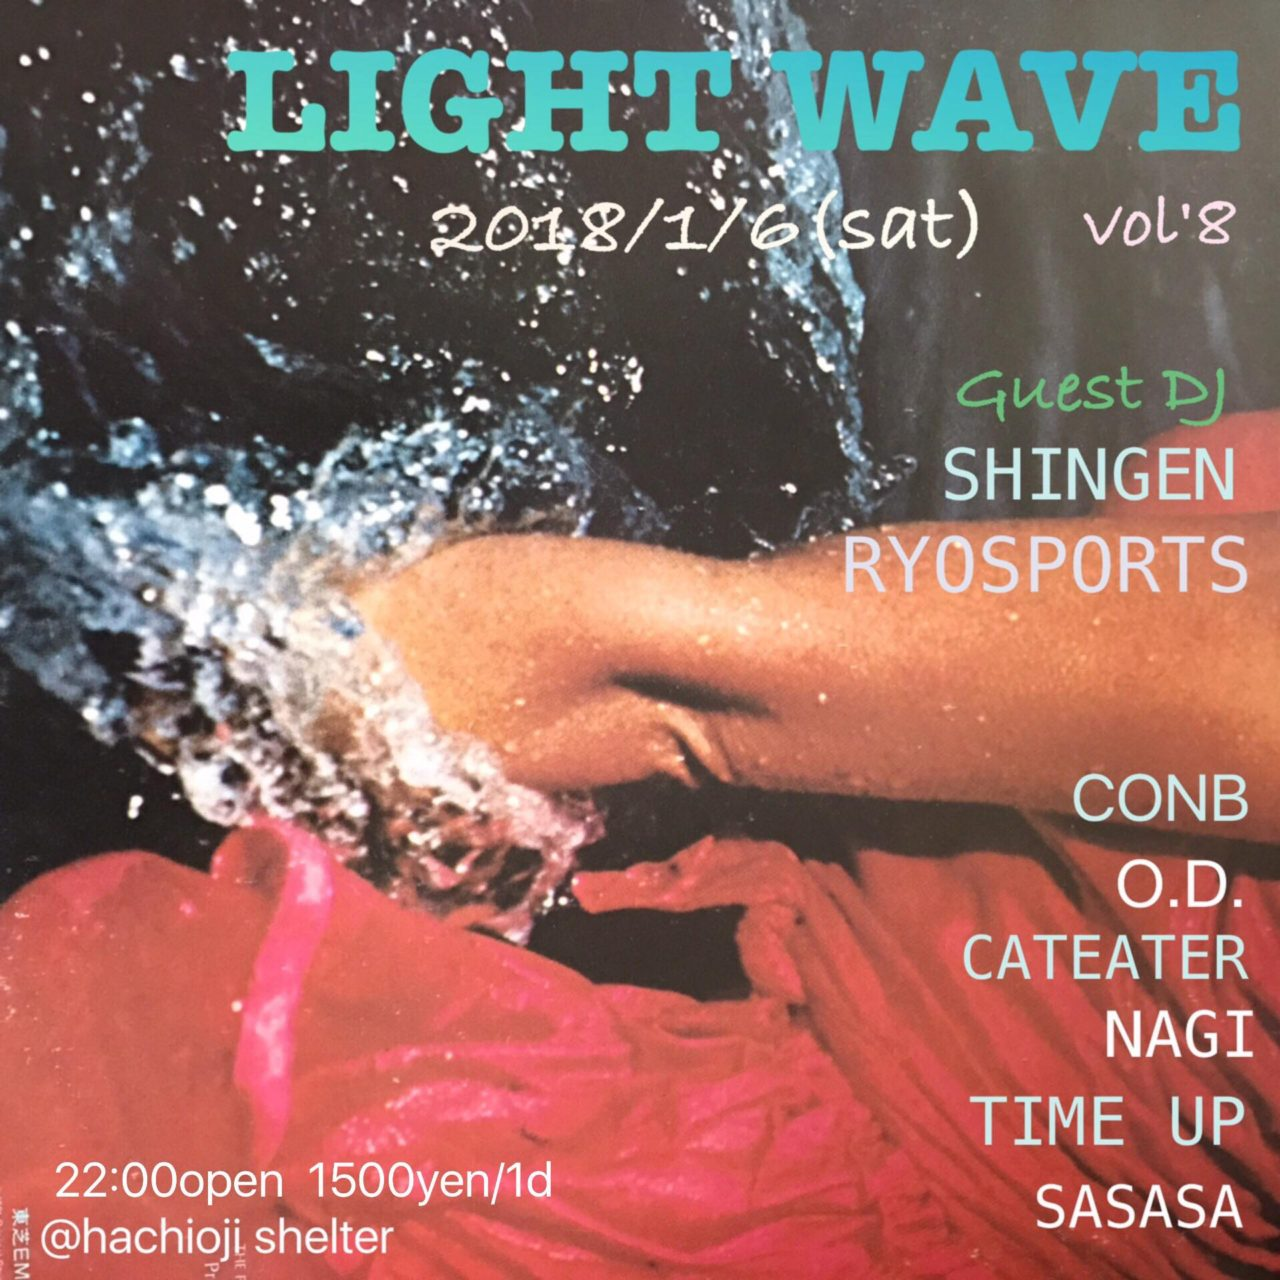 ⚡︎ LIGHT WAVE ⚡︎ vol'8